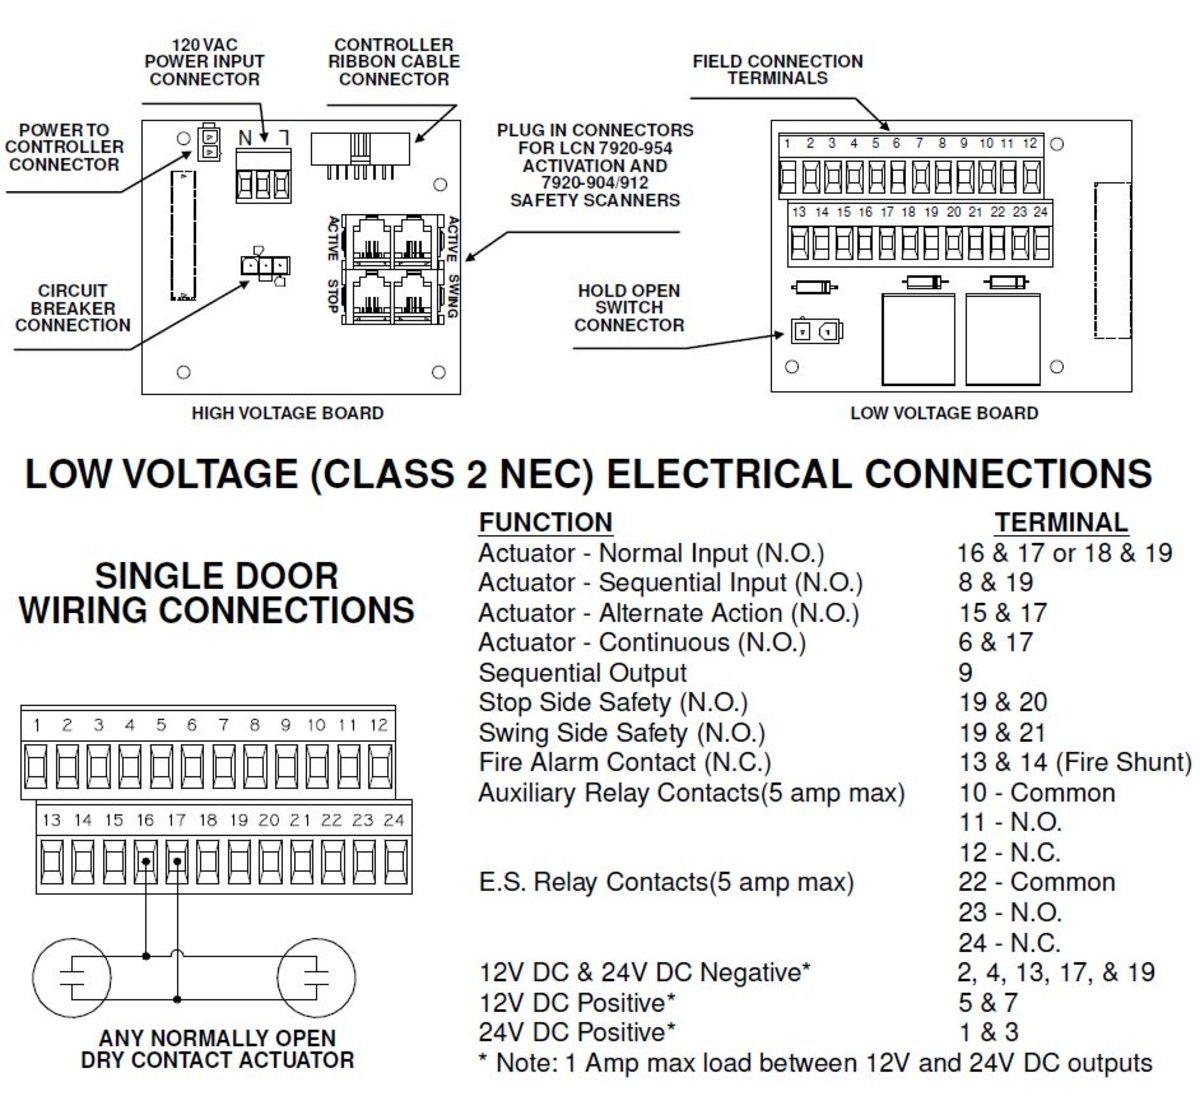 8269329 vingcard exit door wire diagram,exit \u2022 indy500 co  at eliteediting.co